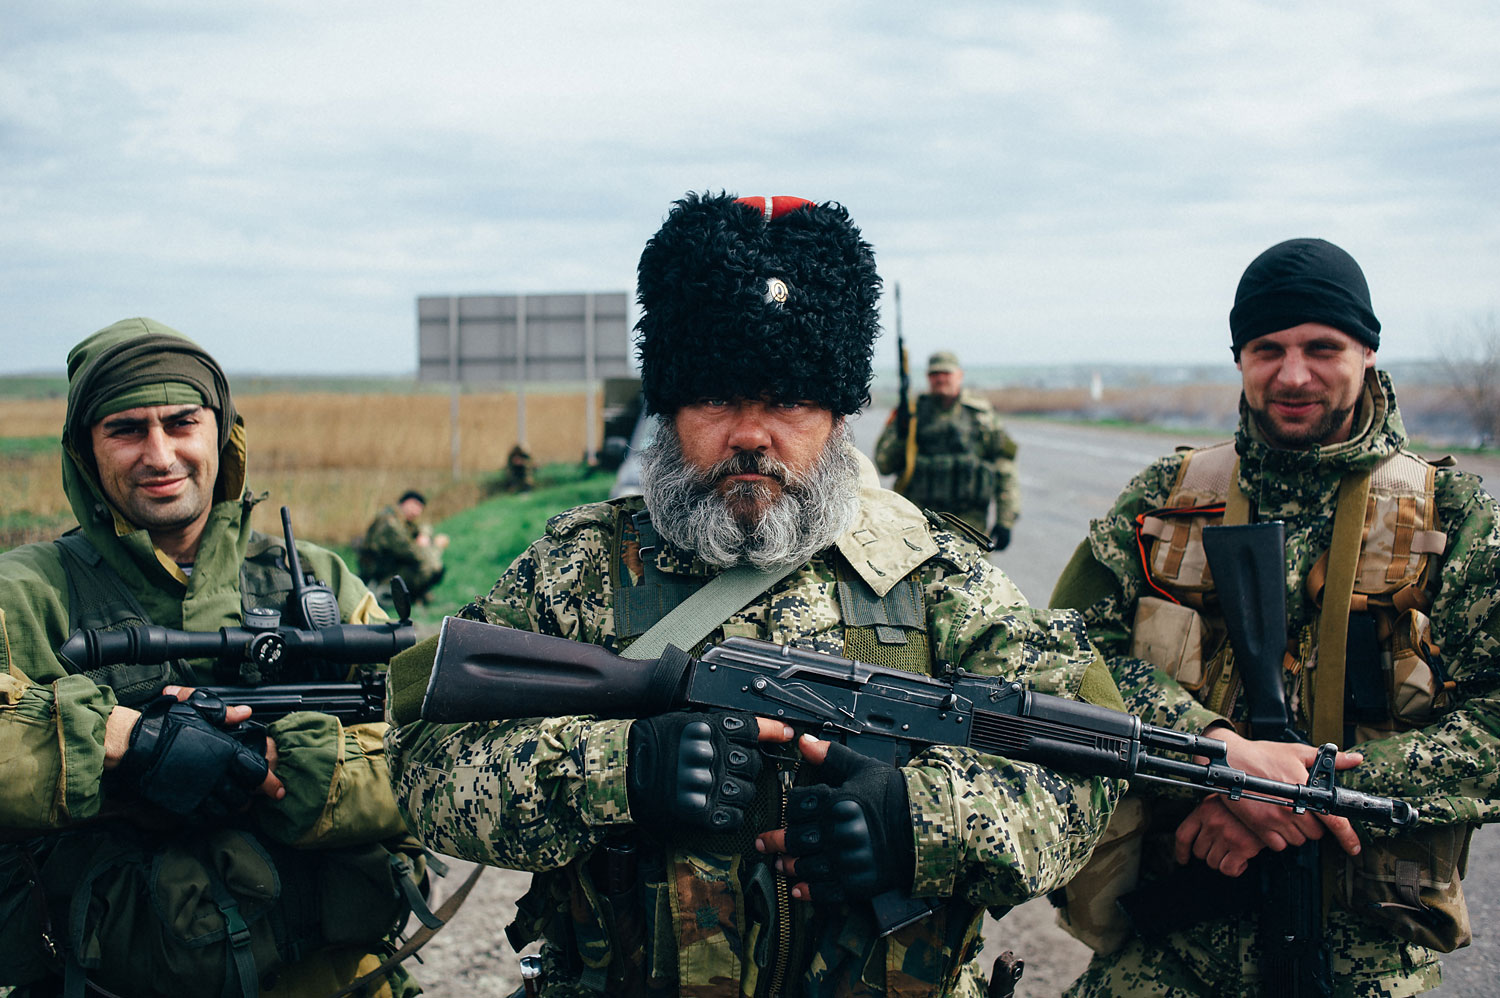 Alexander Mozhaev, a pro-Russian separatist whose photograph has appeared in numerous publications in recent days and who says he is not employed by the Russian state, stands with fellow separatists in the town of Slavyansk on April 20